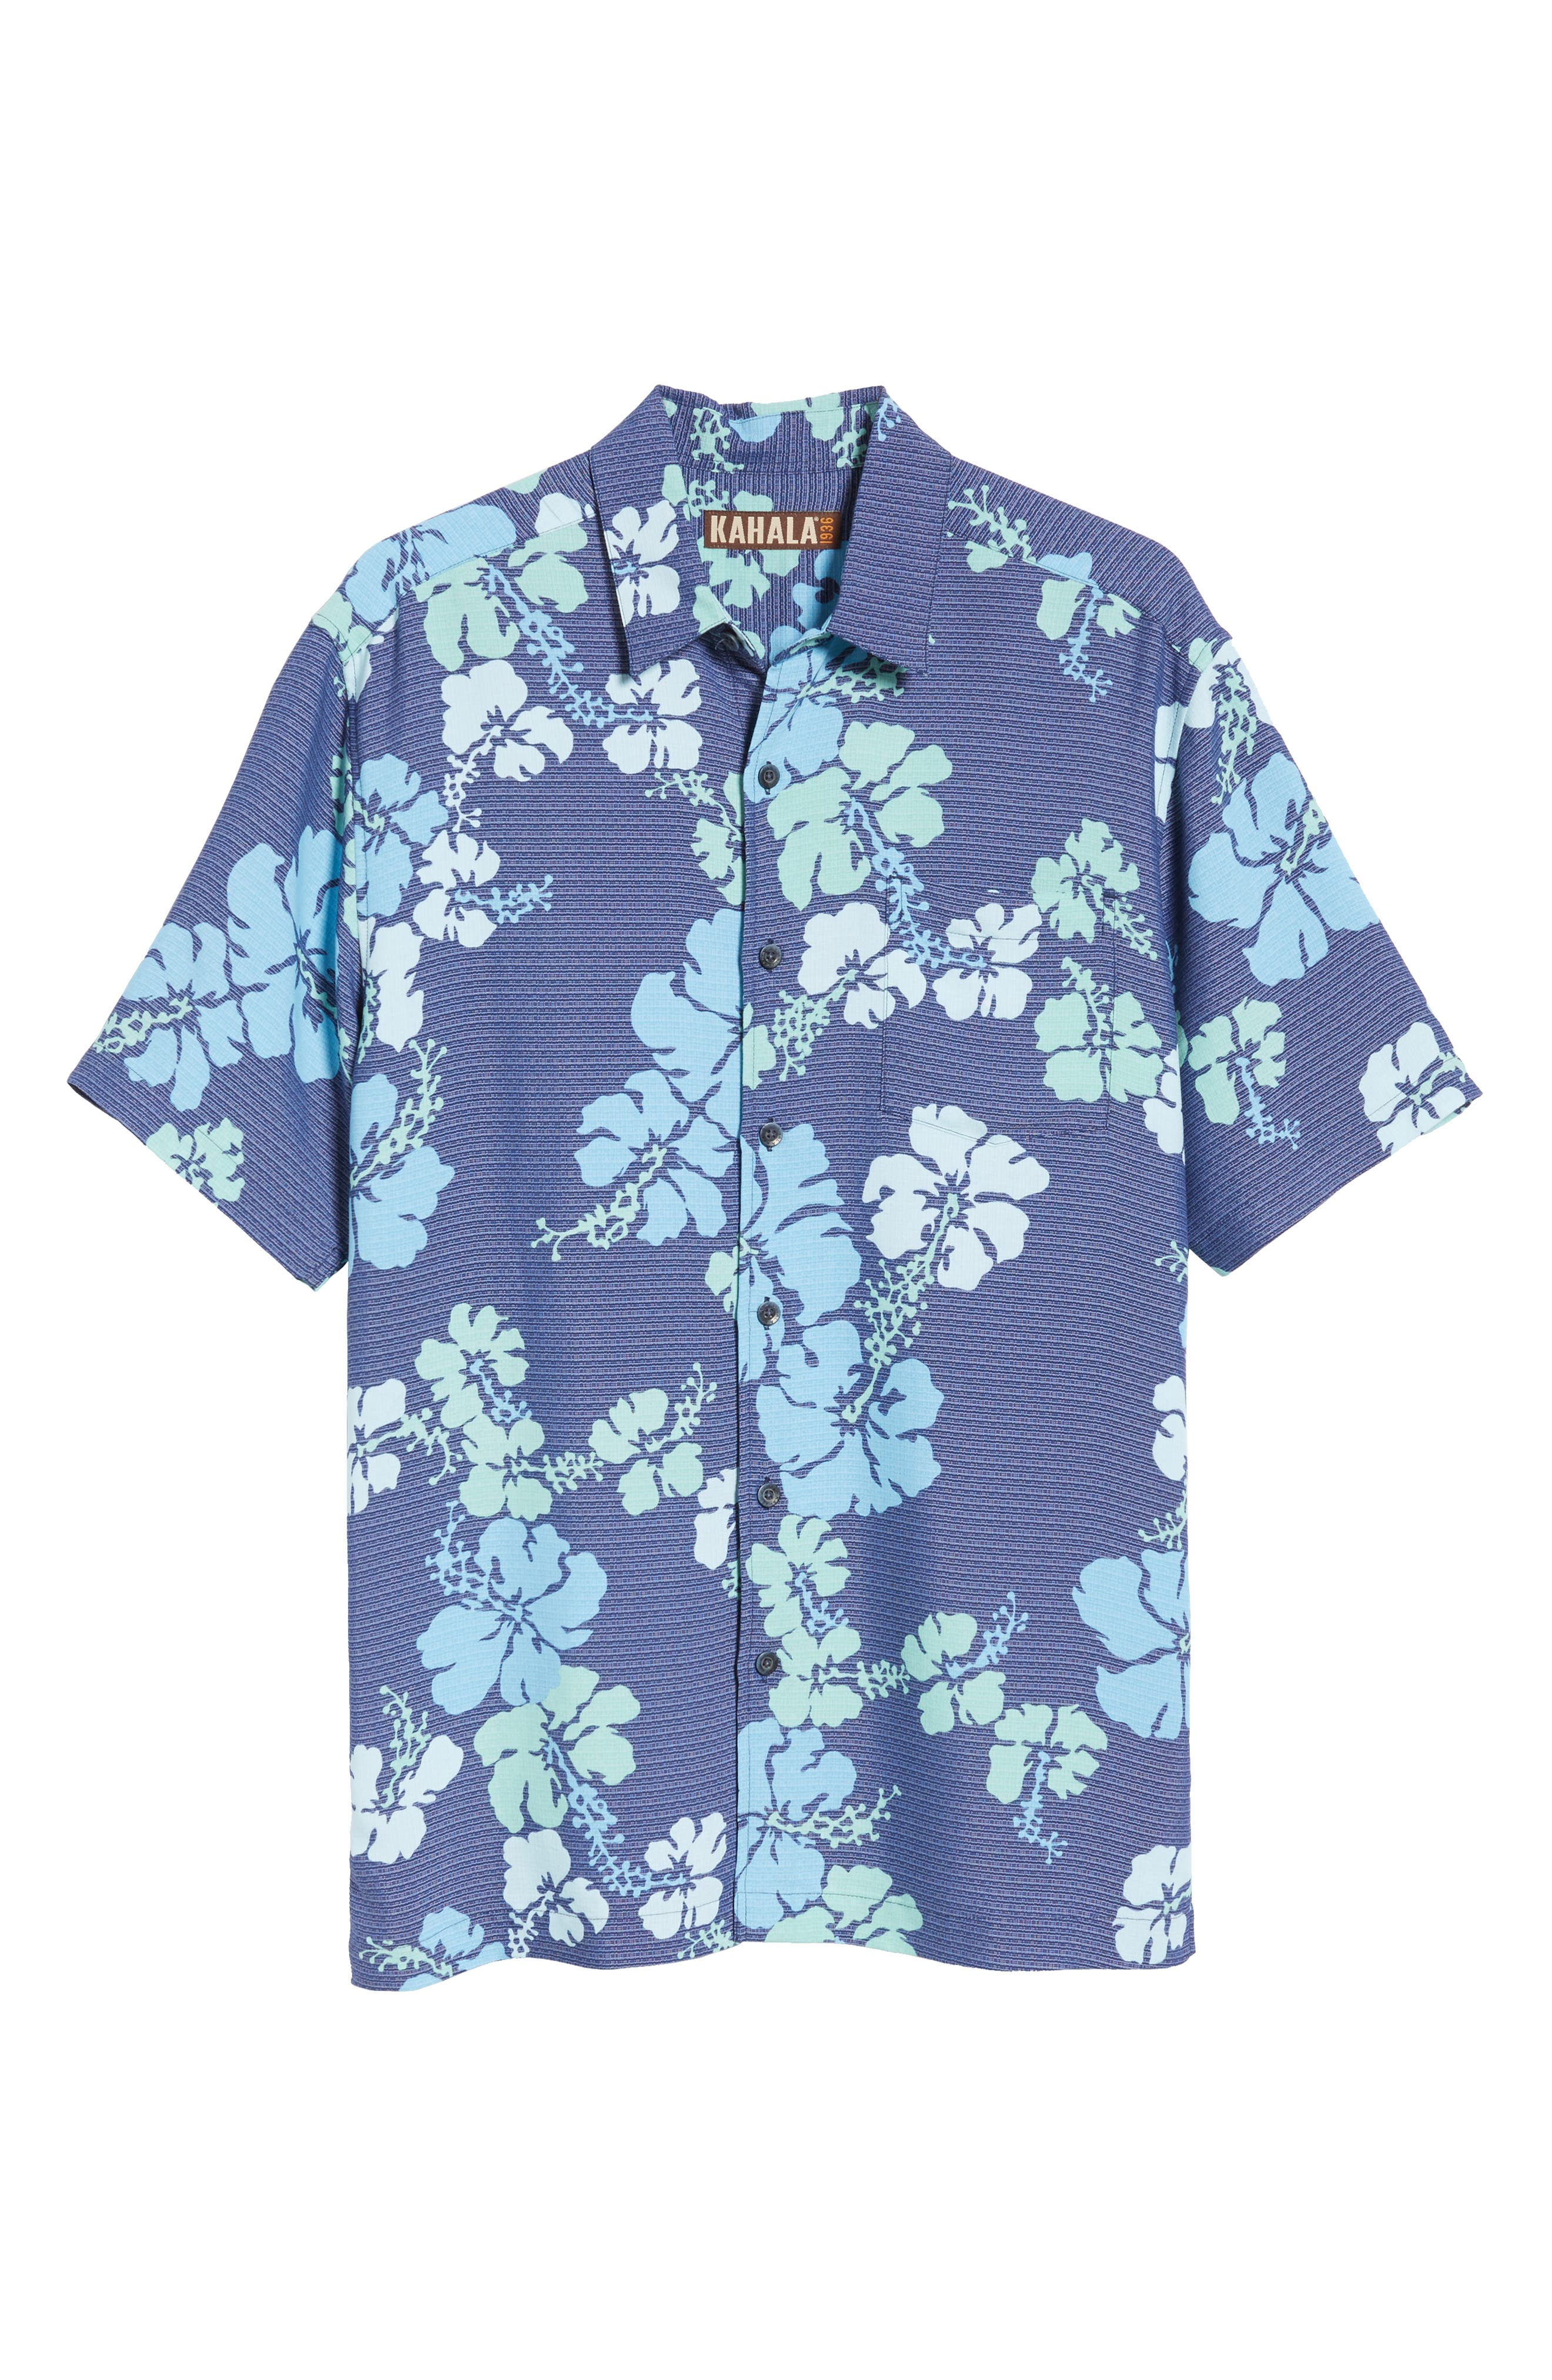 Lei Day Standard Fit Camp Shirt,                             Alternate thumbnail 6, color,                             Navy